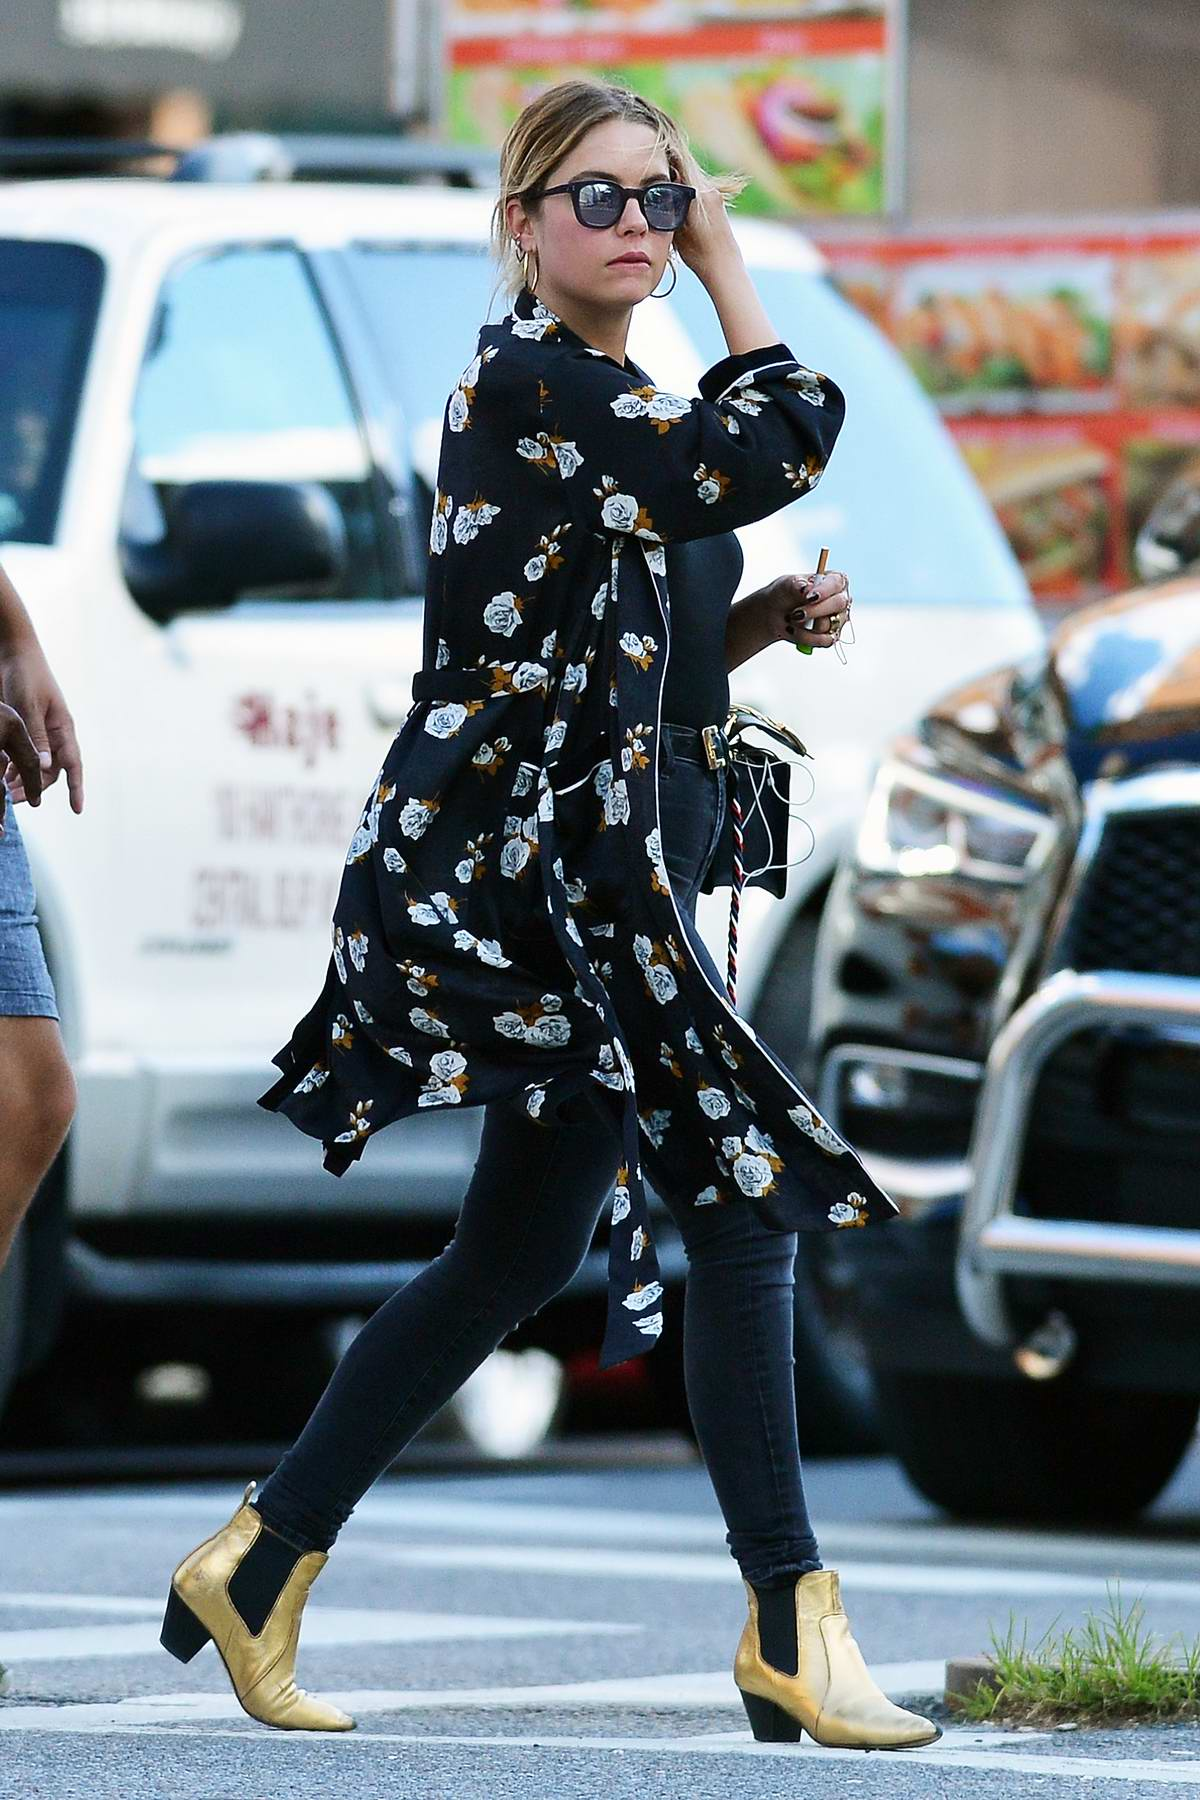 Ashley Benson steps out wearing a Kimono over black T-shirt in New York